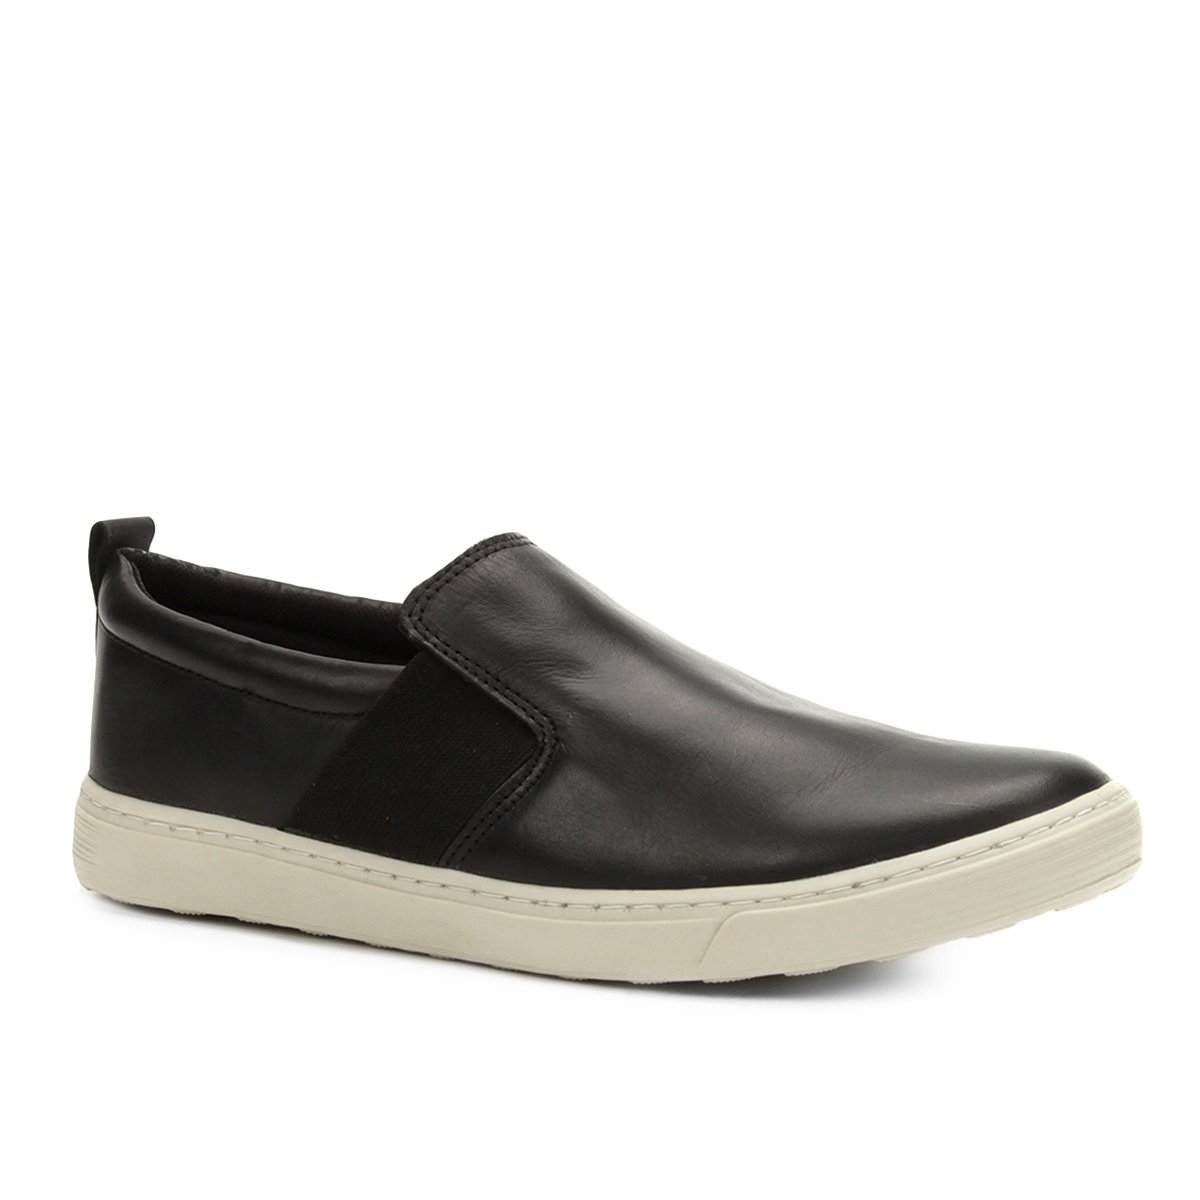 67c026ddb757a Slip On Couro Shoestock Básico Masculino | Shoestock